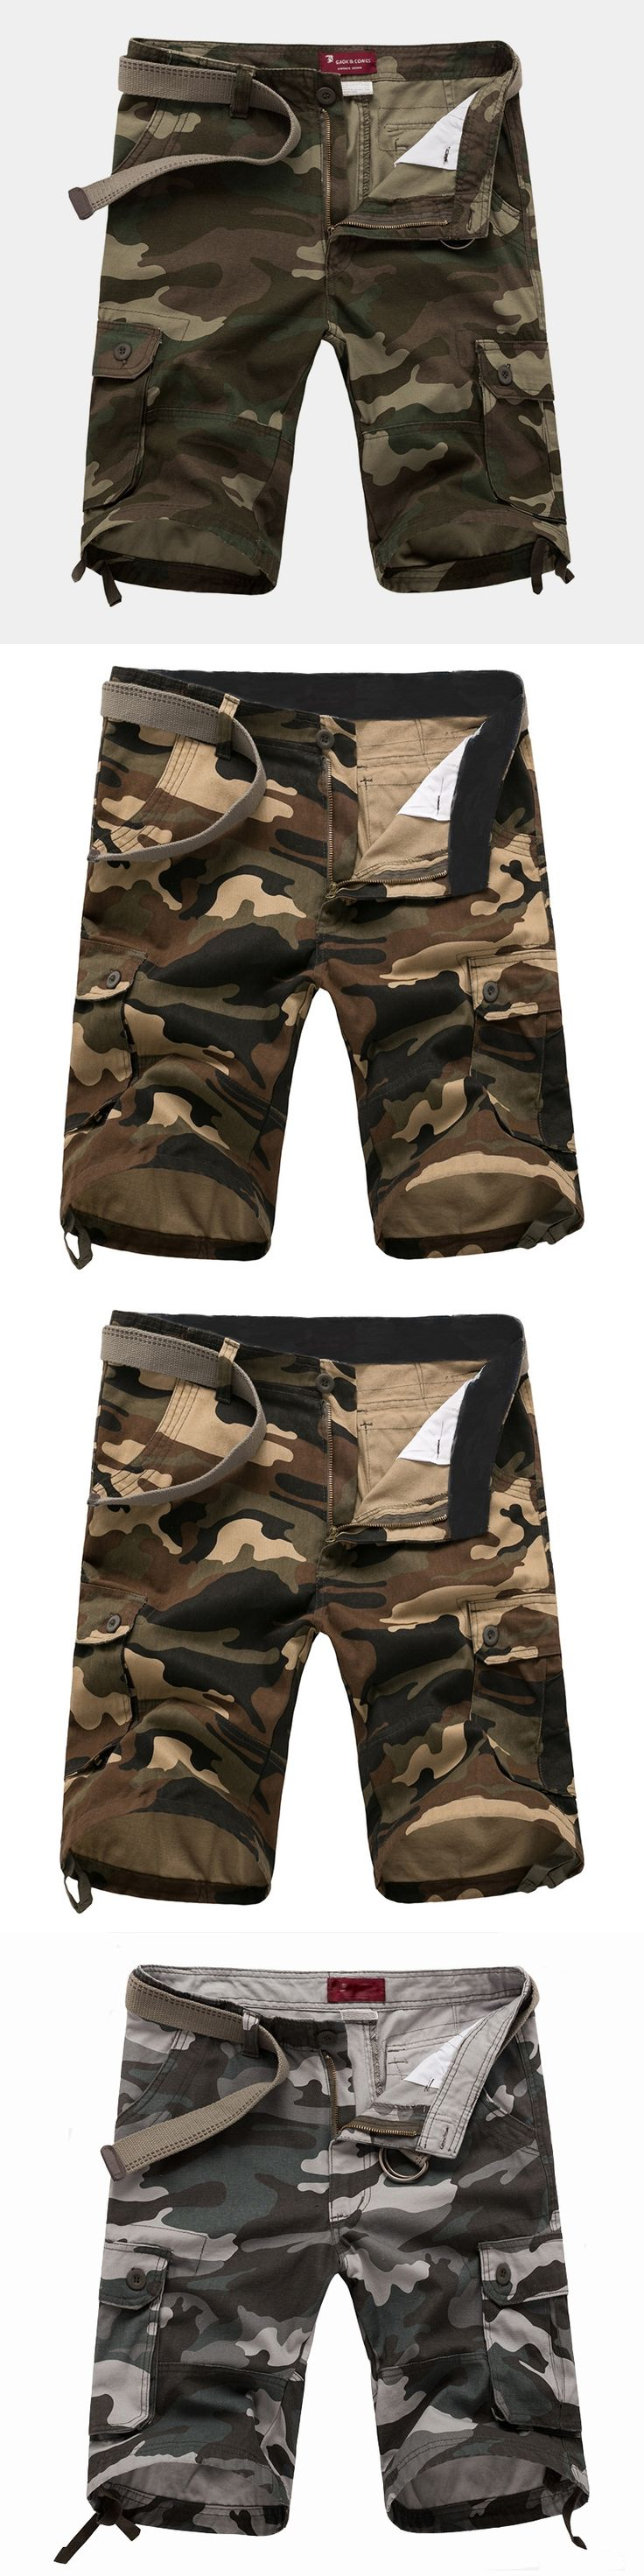 2017 Summer Camouflage Camo Cargo Shorts Mens Casual Shorts Male Loose Work Shorts Man Military Short Pants Plus Size 29-42